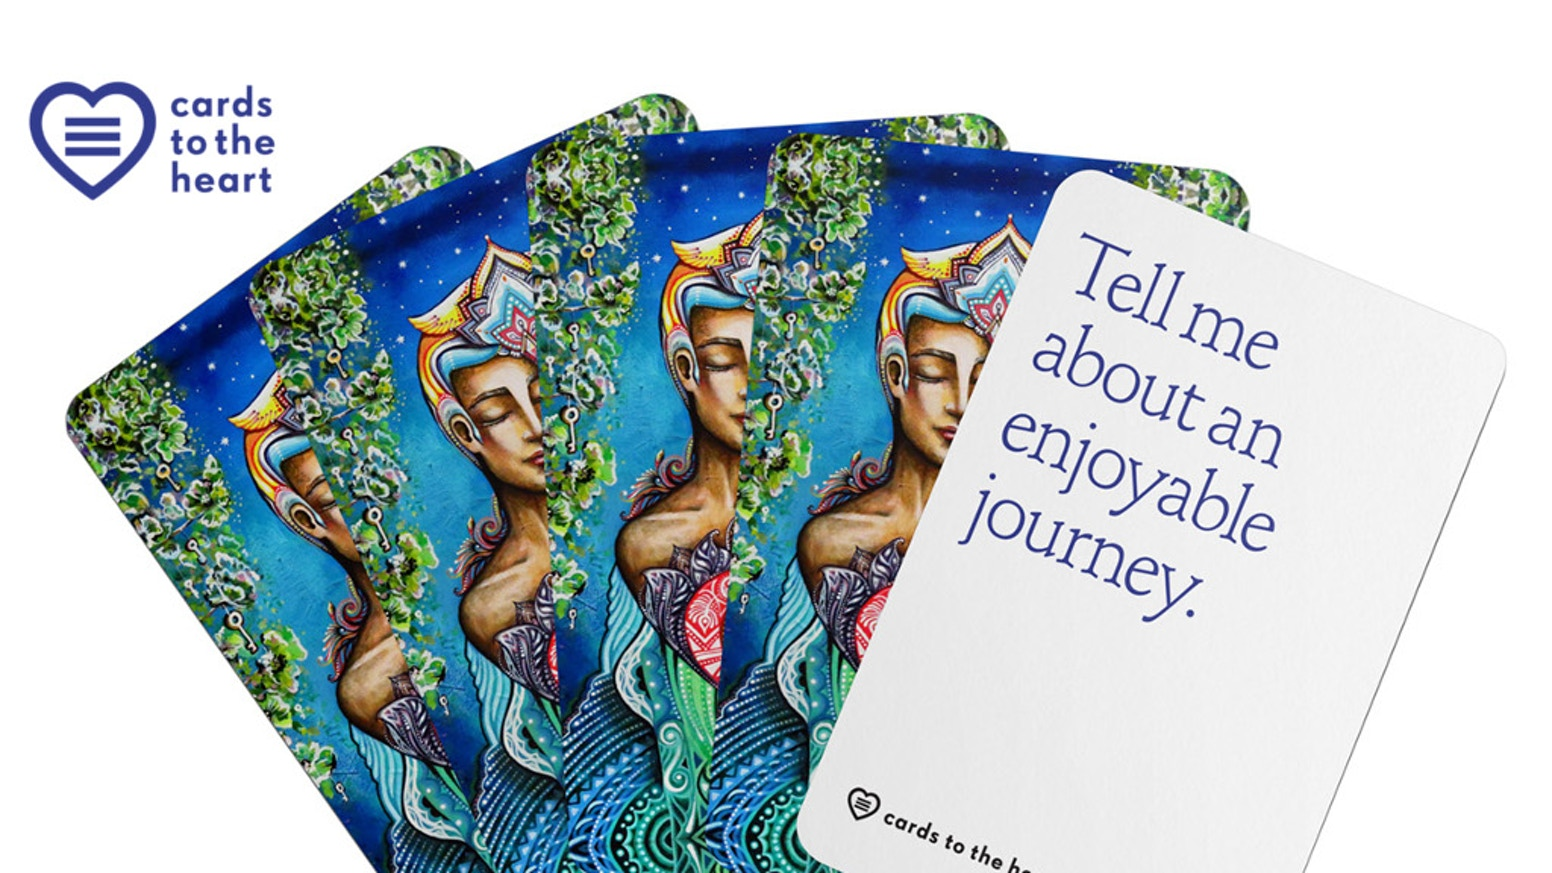 Question cards that encourage conversations to deepen friendships and relationships.